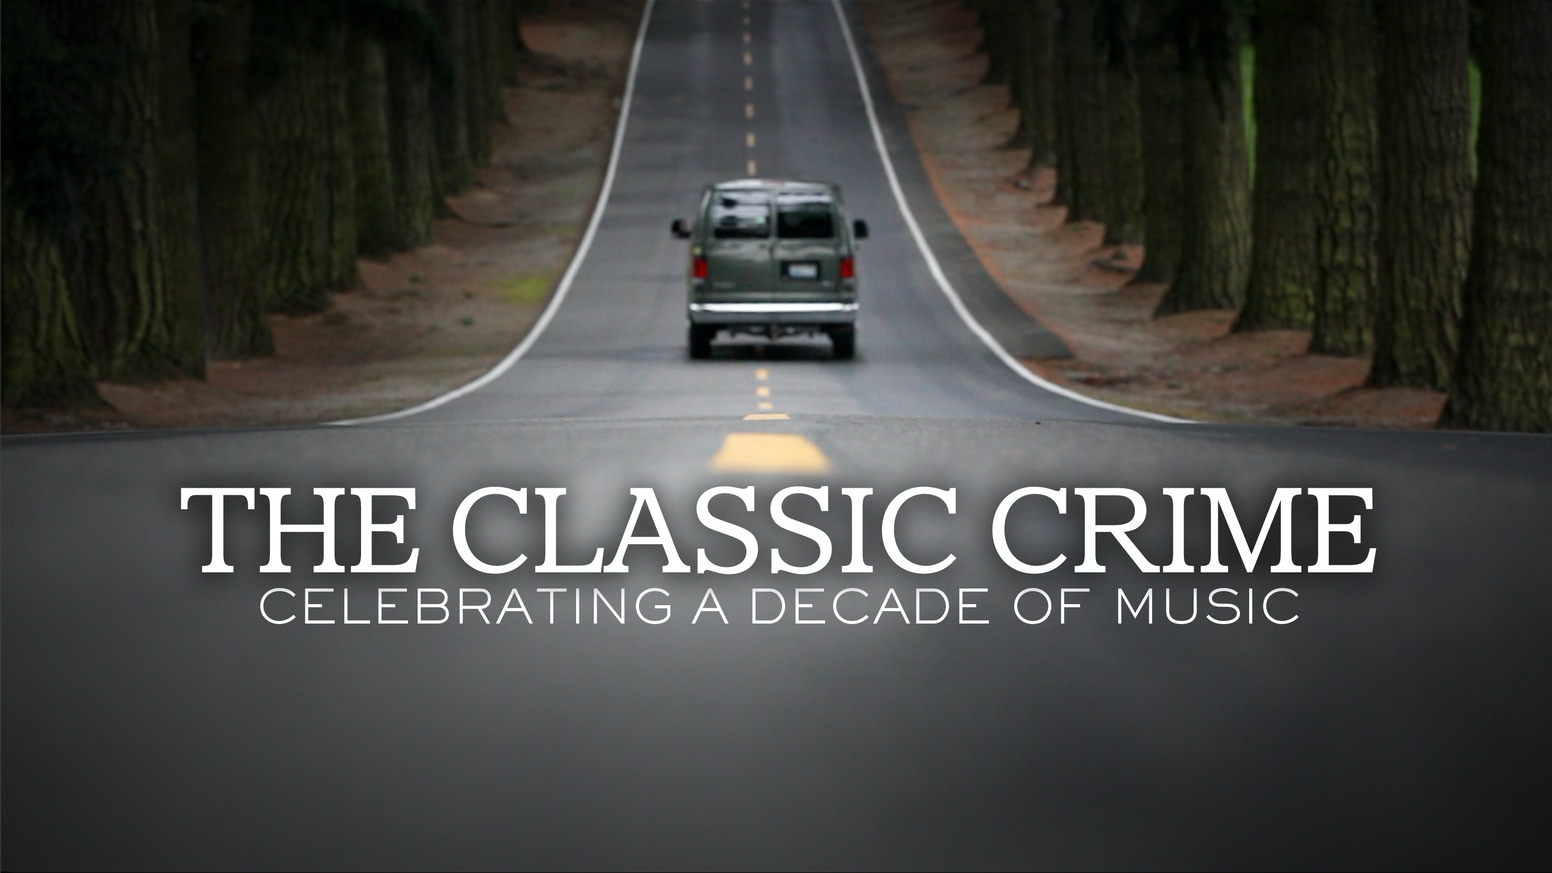 The Classic Crime officially turns 10 in 2014. Help us celebrate & acoustically re-imagine 10 different TCC songs from the last decade.